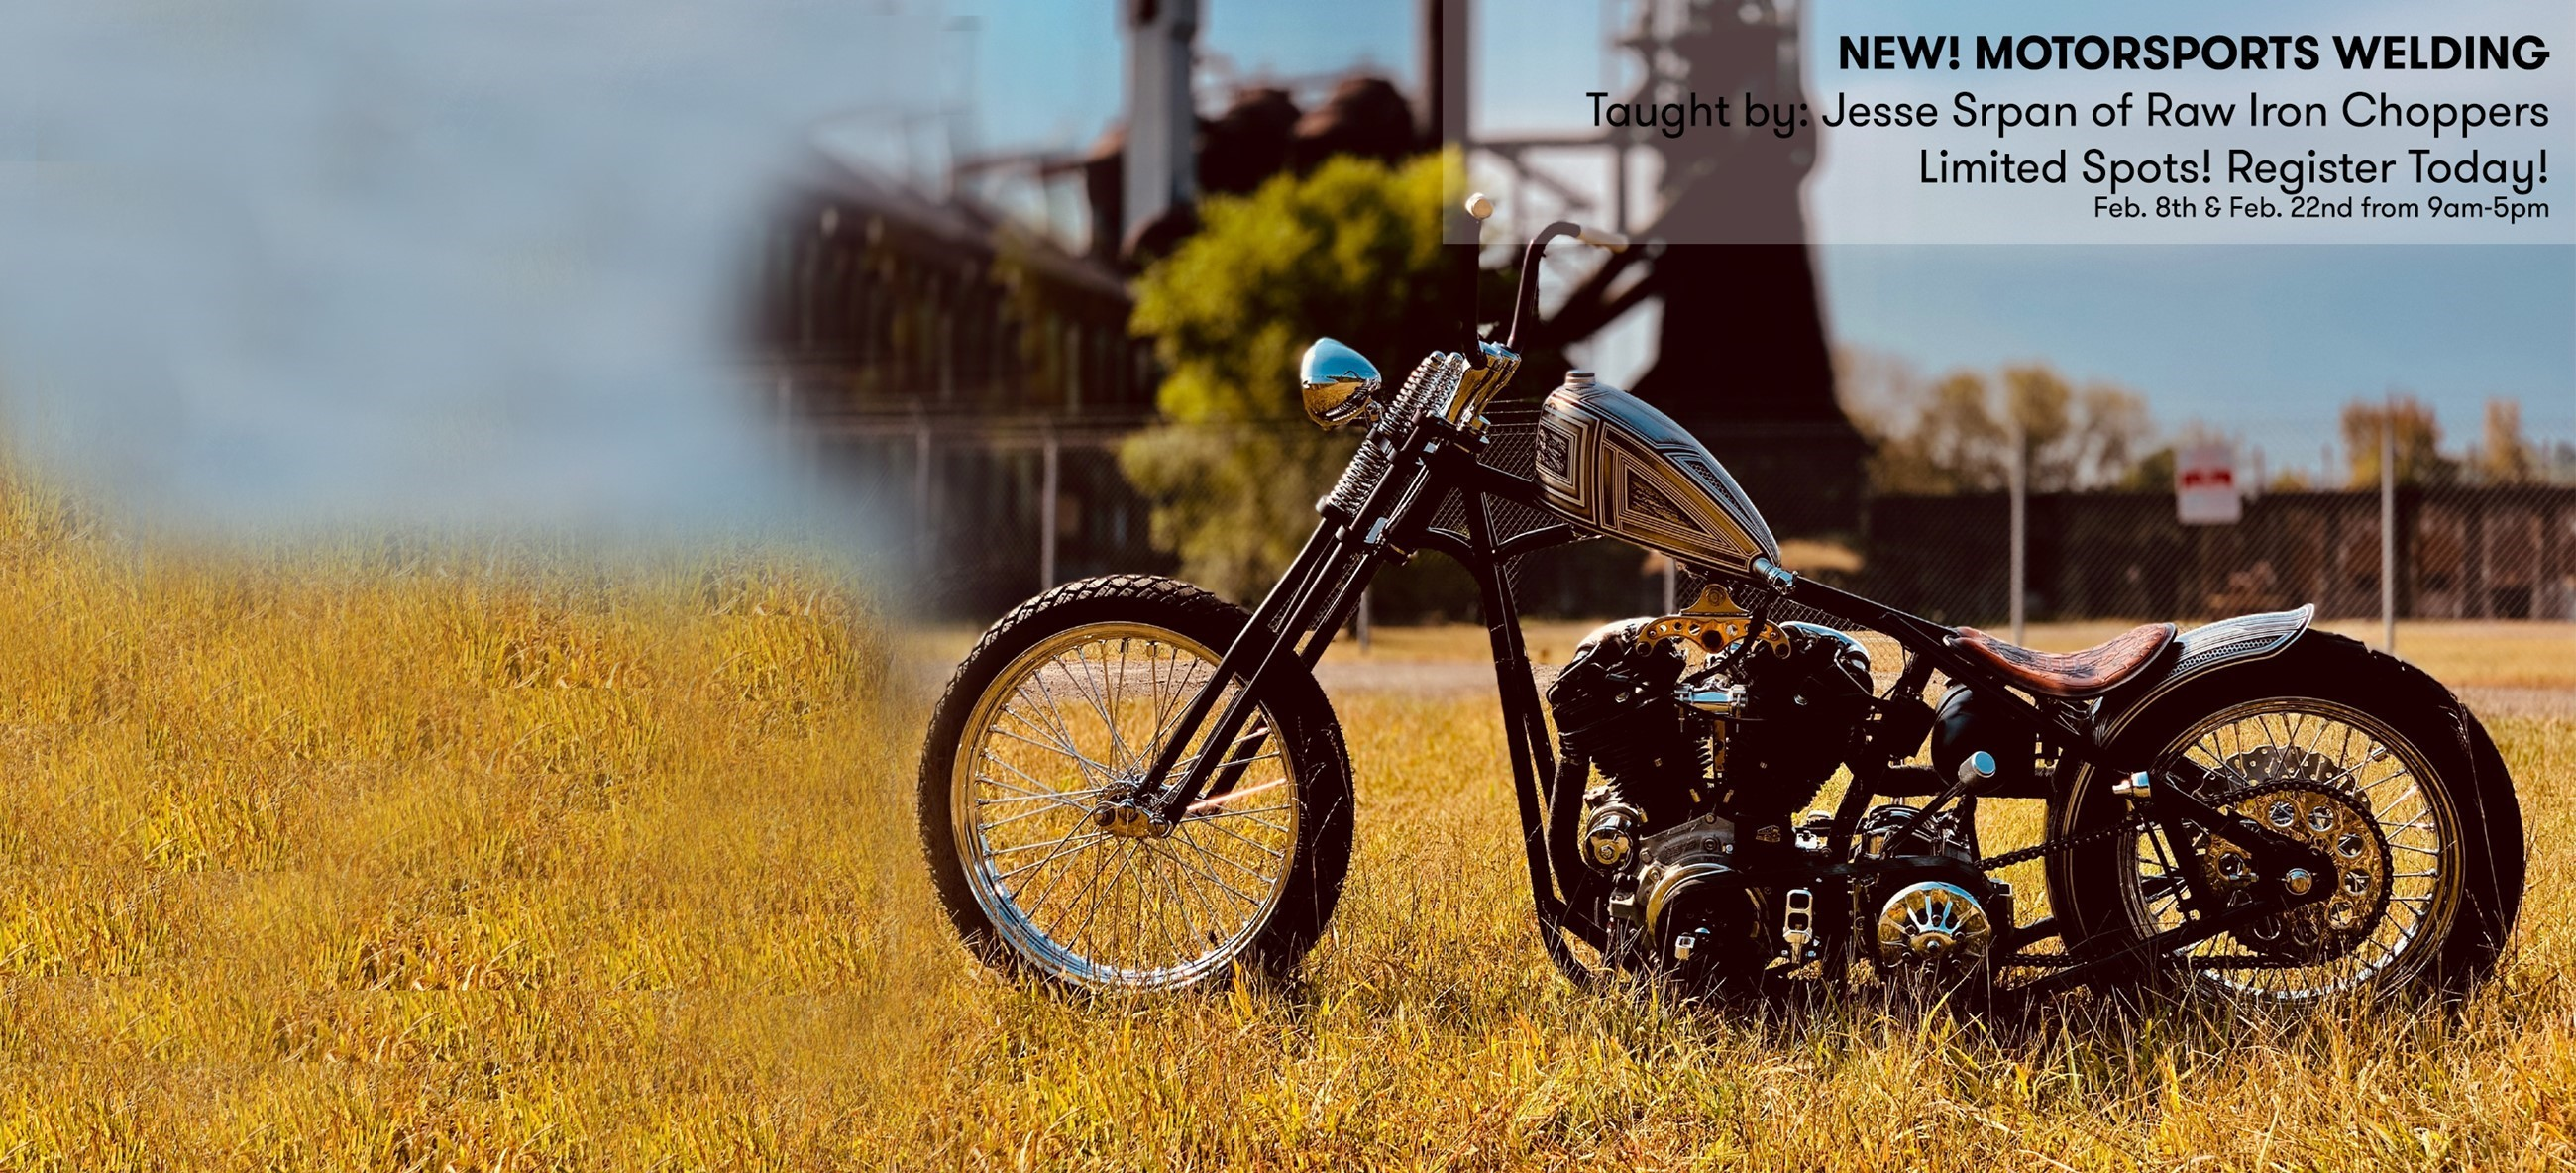 Motorcycle in a field with a structure in the background